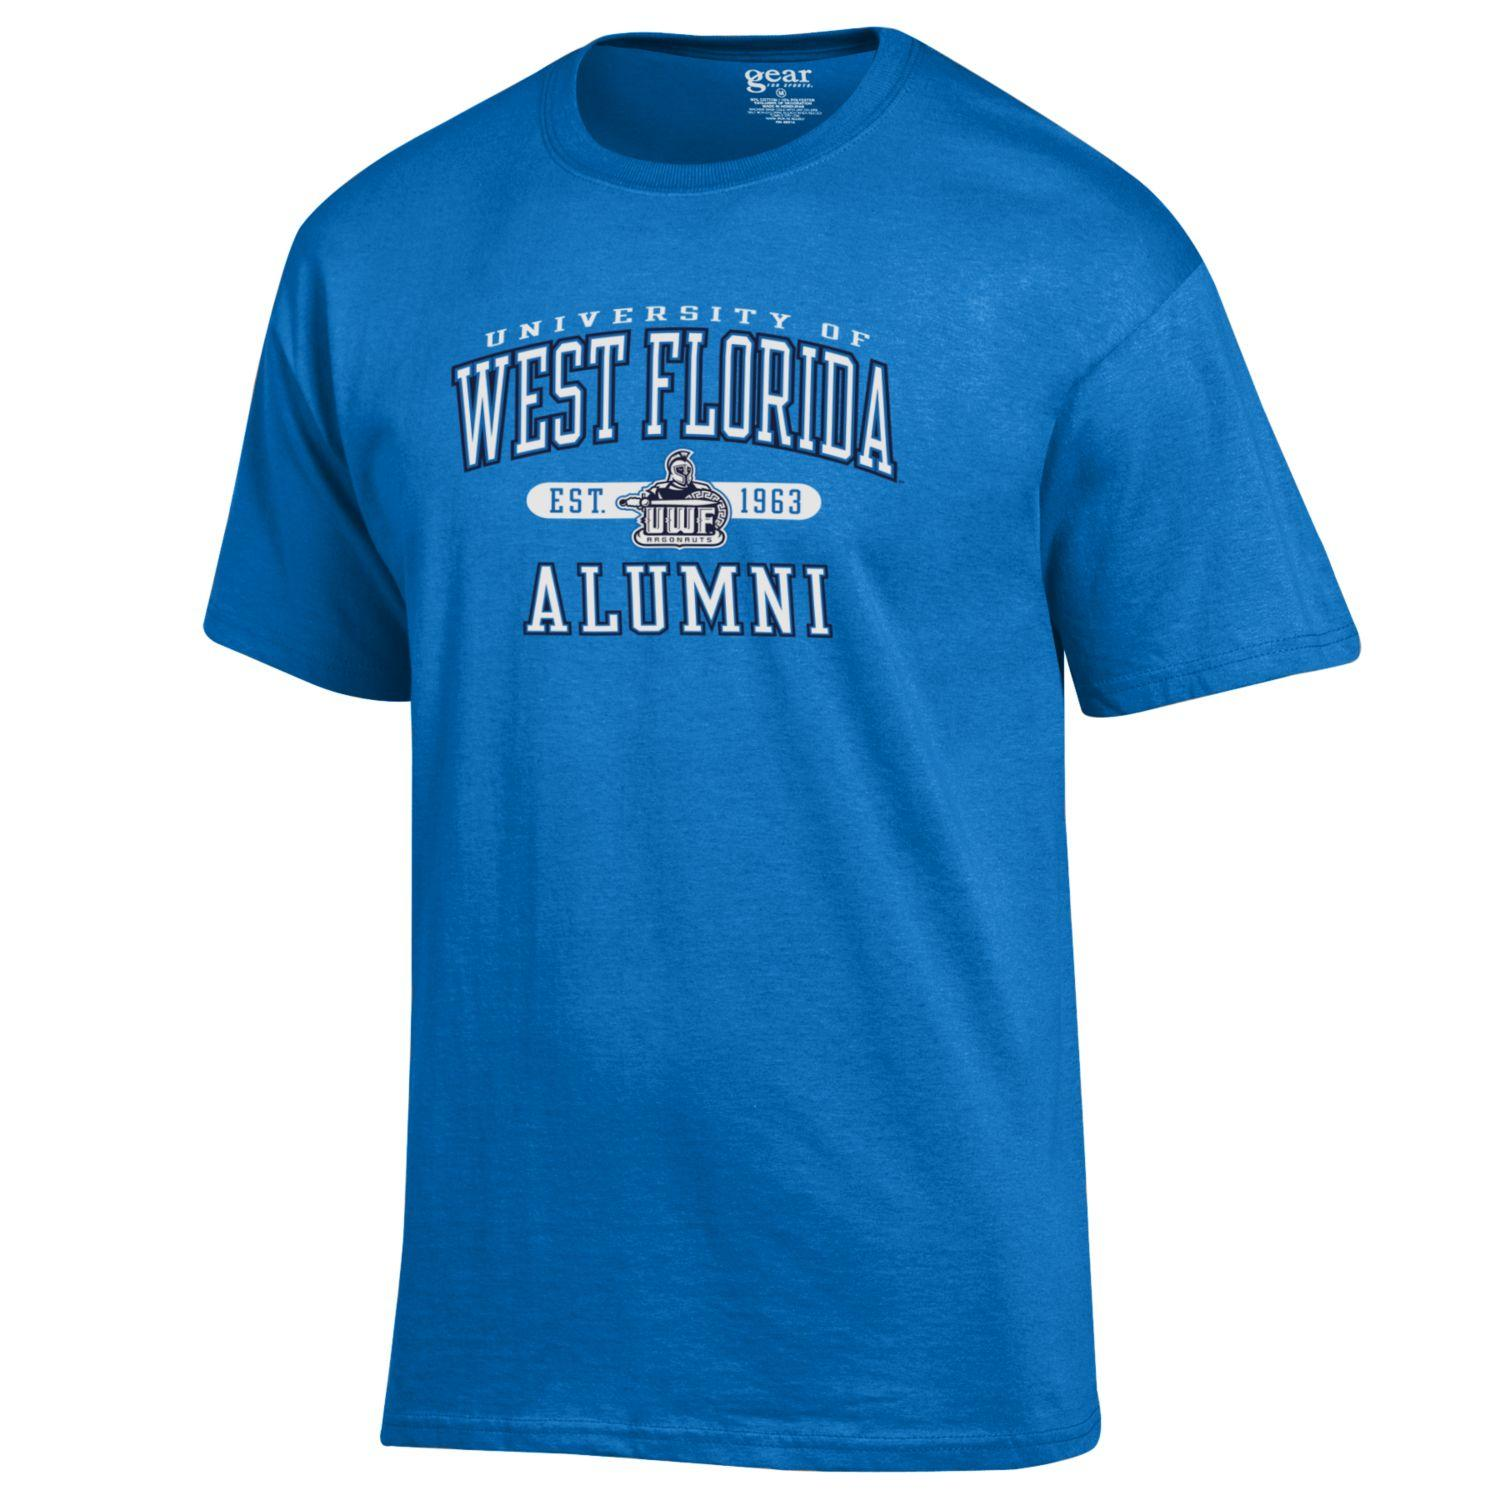 Textbook Brokers West Florida Apparel Accessories Men T Shirts